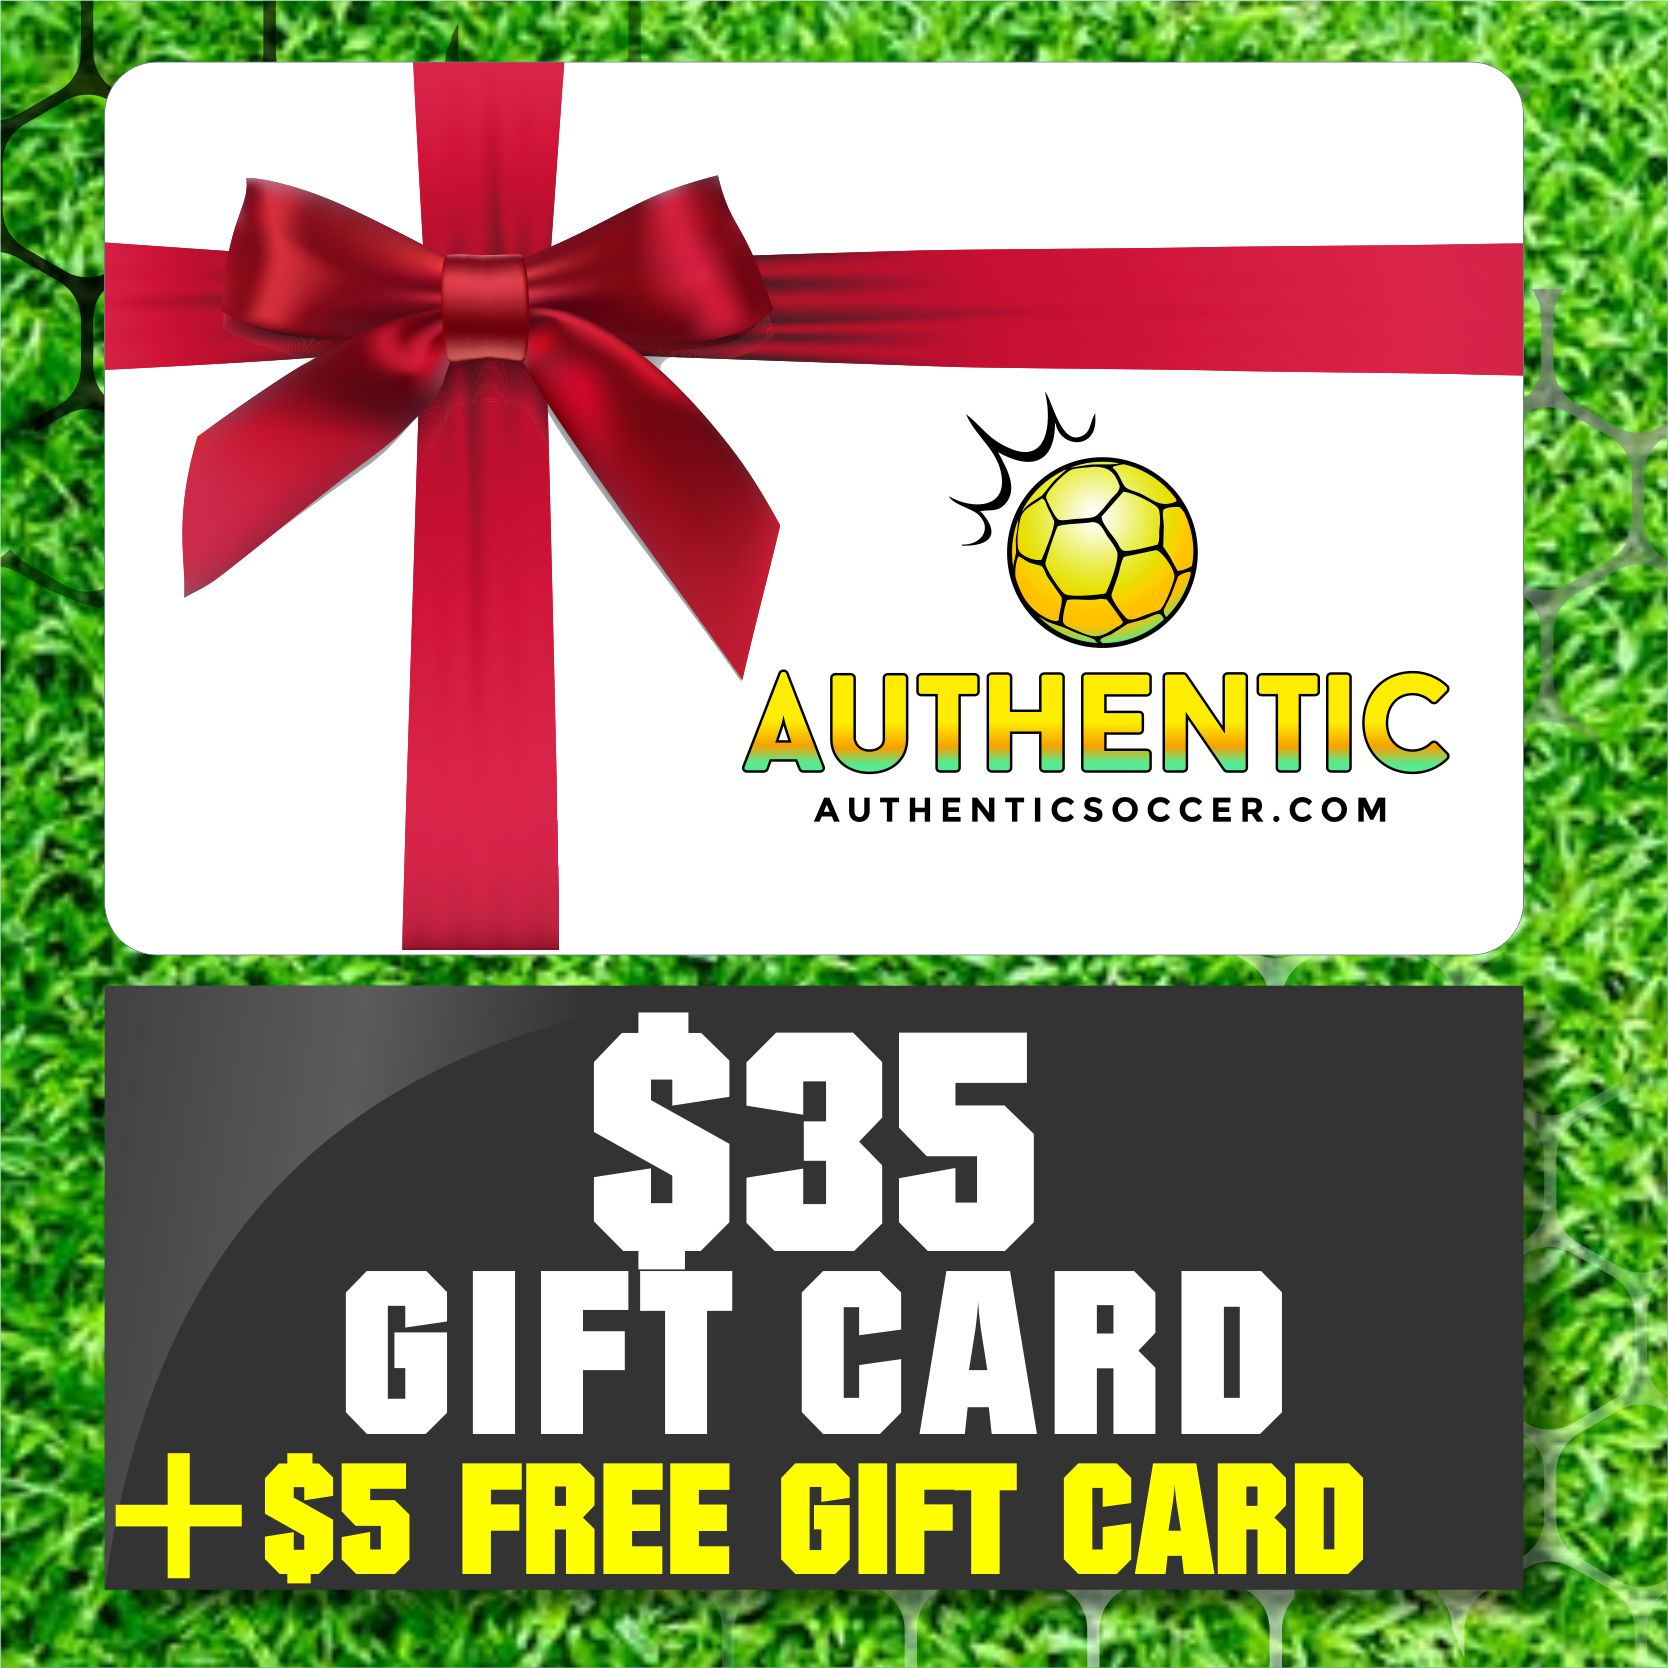 $35 Gift Card GIFTCARD35